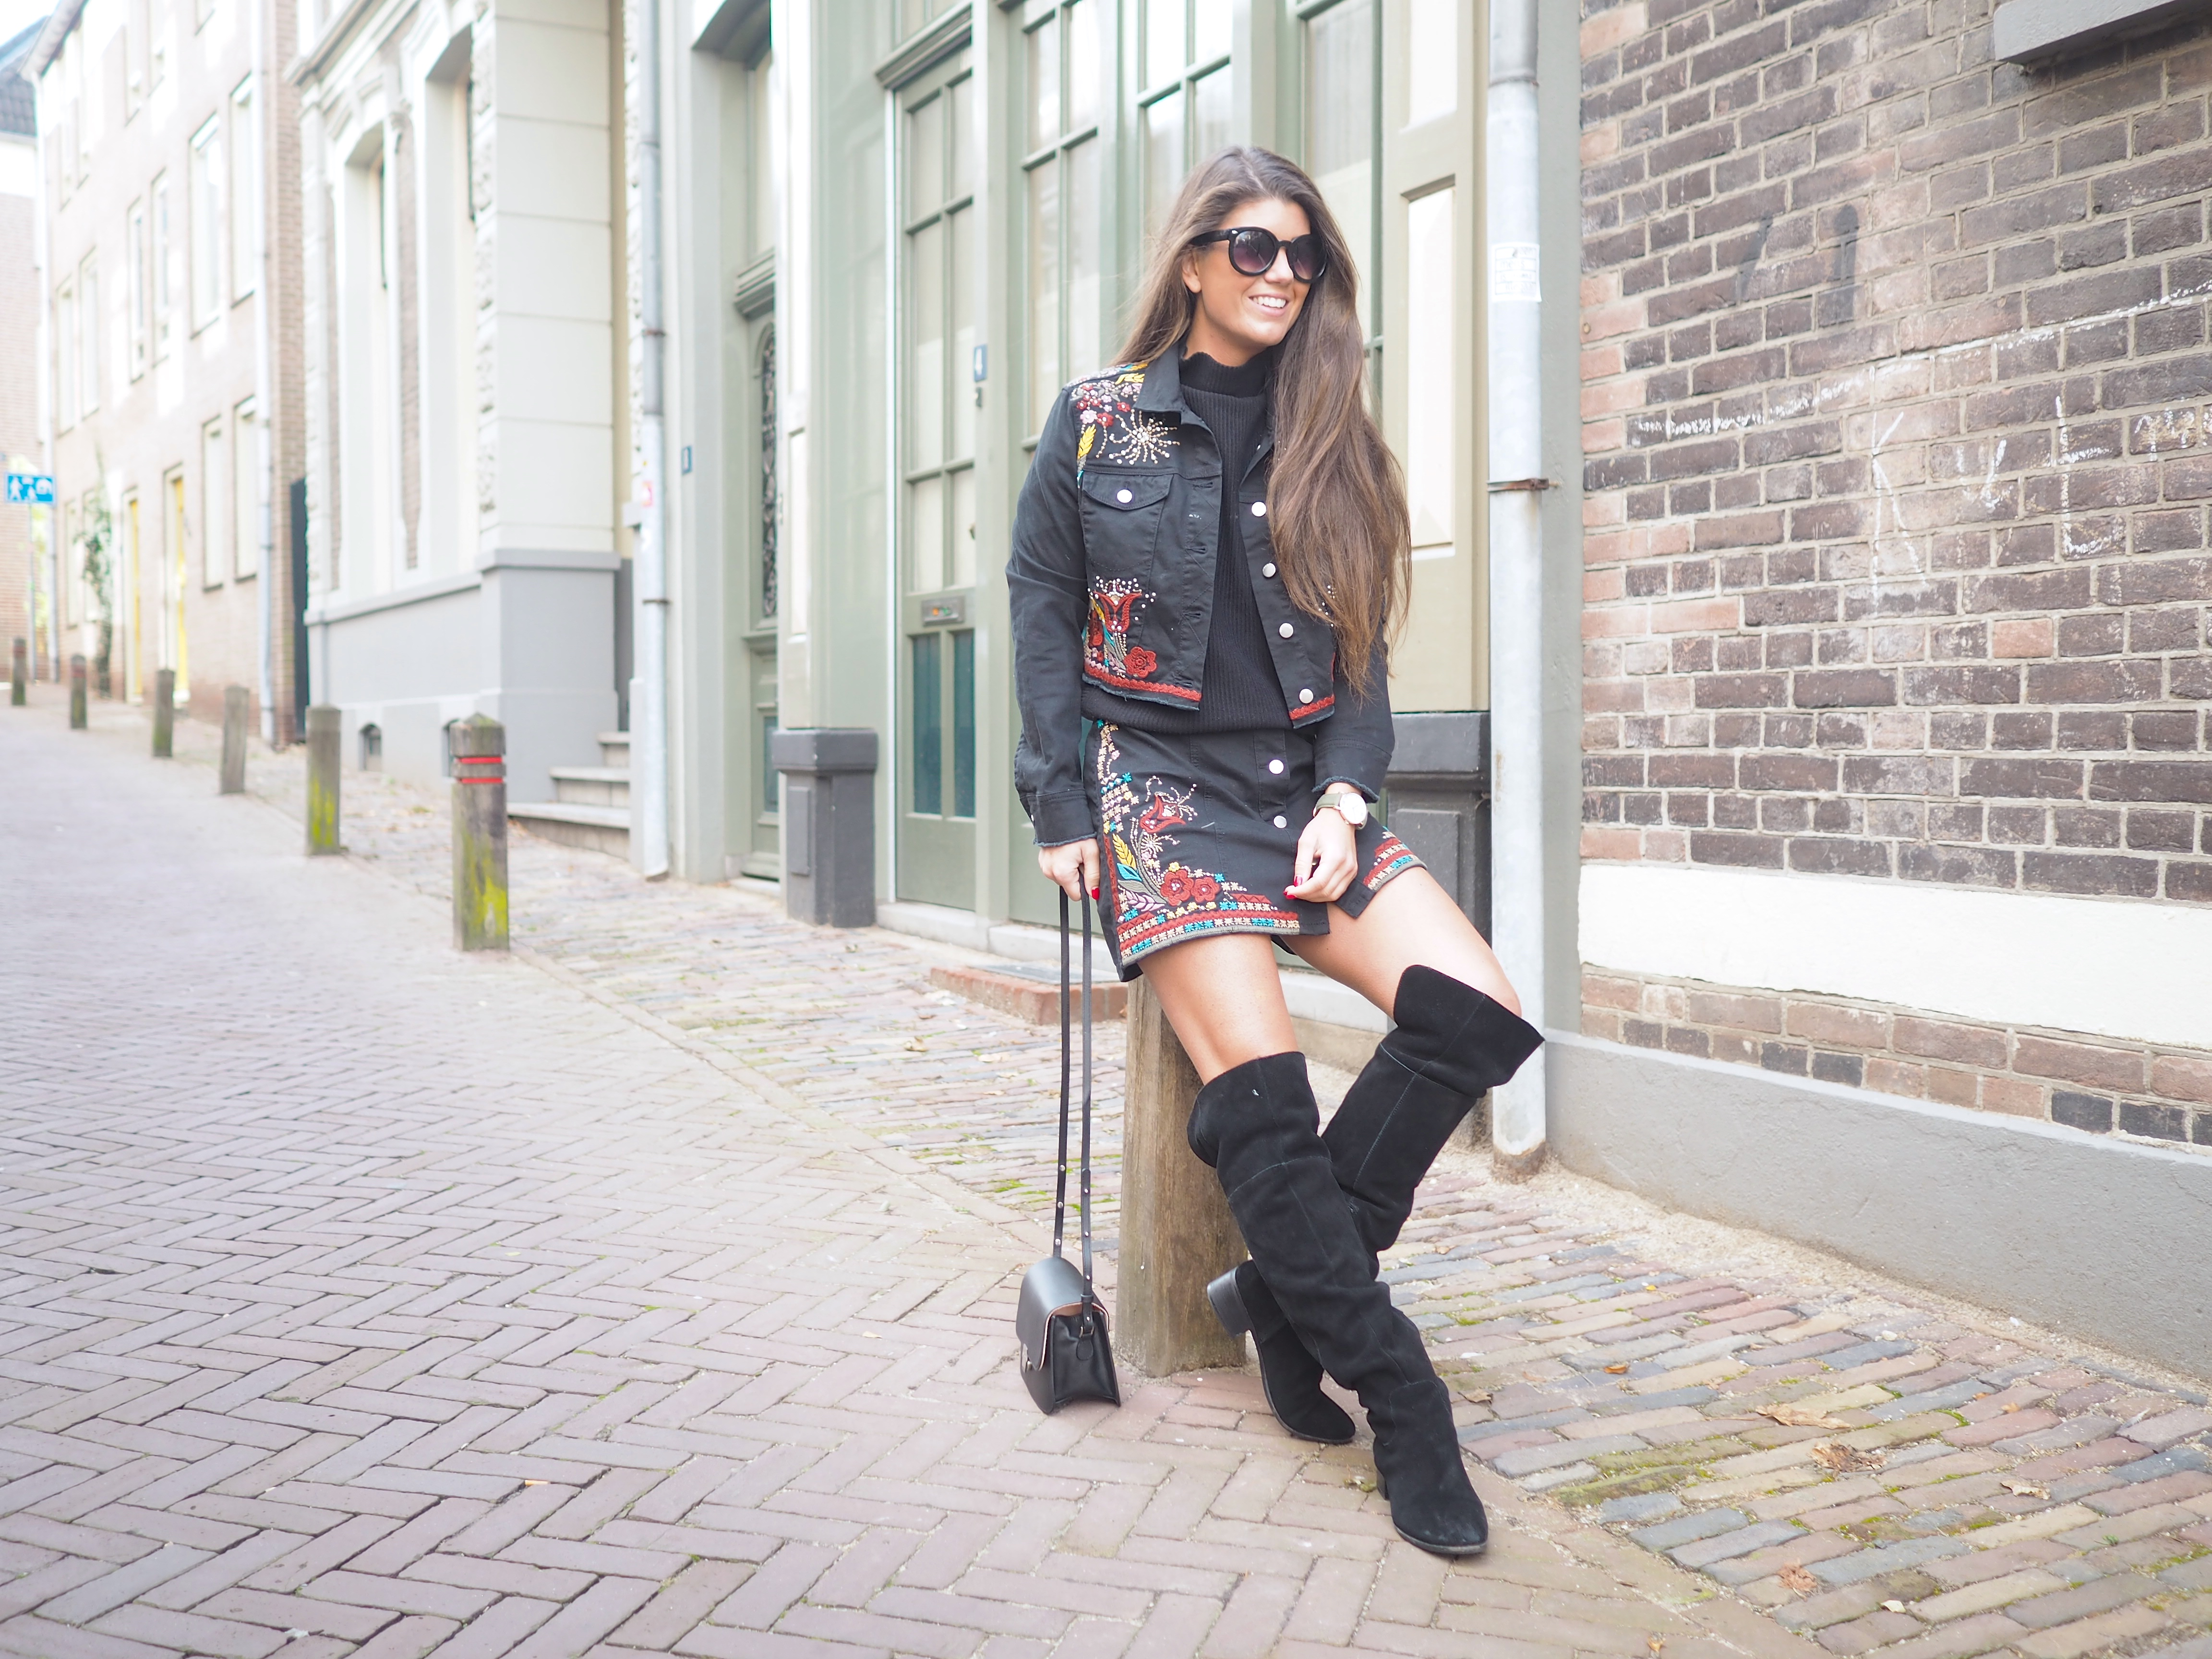 OVERKNEE BOOTS TREND RIVER ISLAND FASHIONBLOG